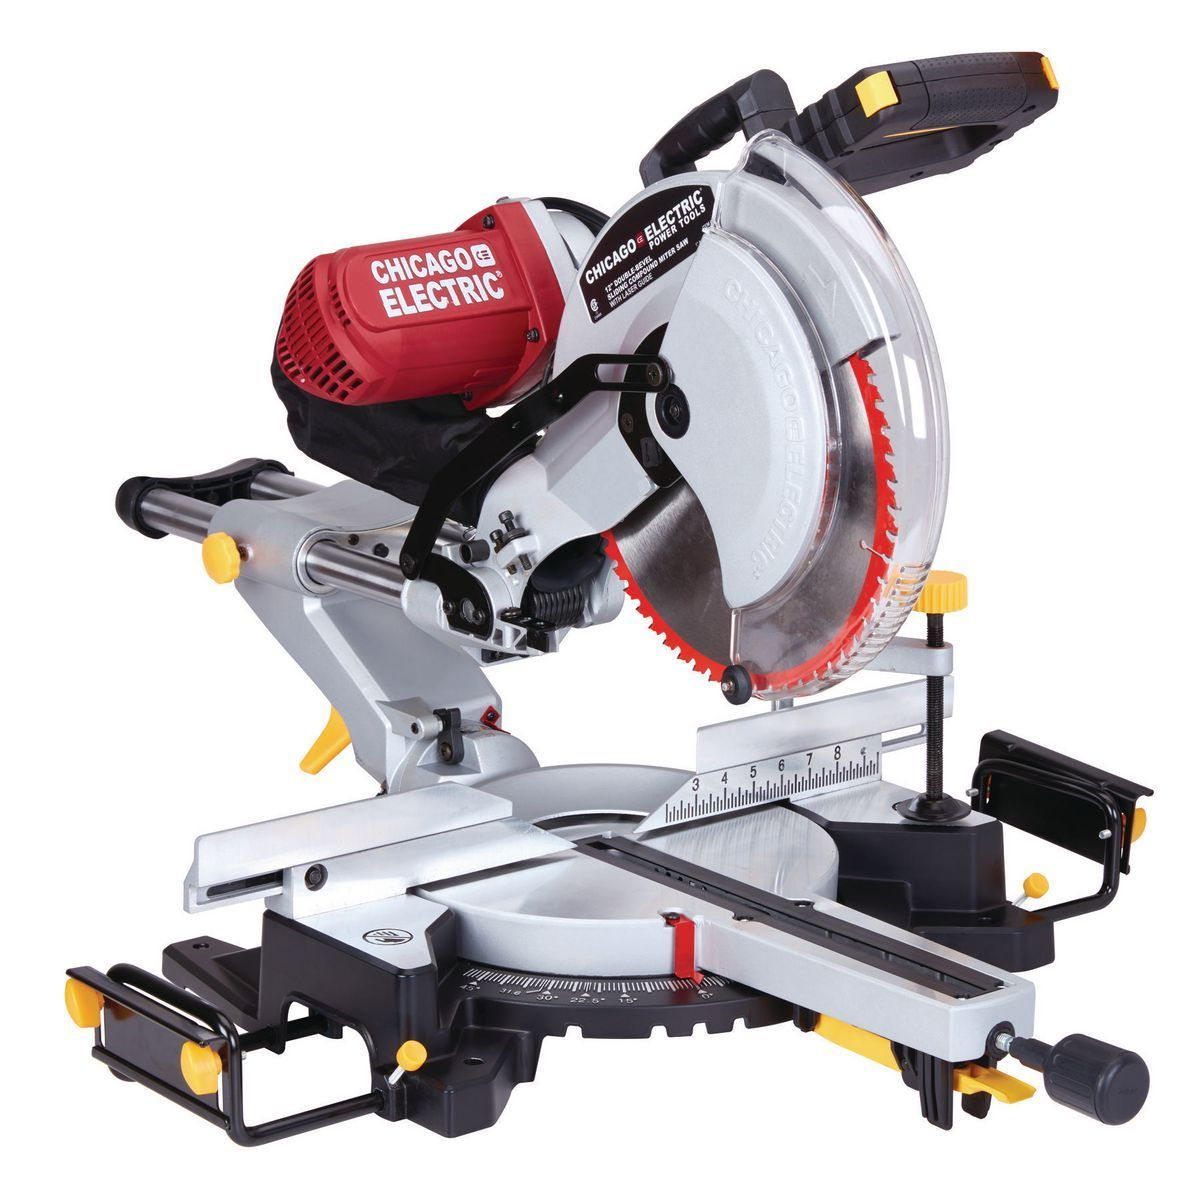 Amazing Deals On This 12in Double Bevel Sliding Miter Saw W Laser At Harbor Freight Quality Tools Low Sliding Compound Miter Saw Sliding Mitre Saw Miter Saw